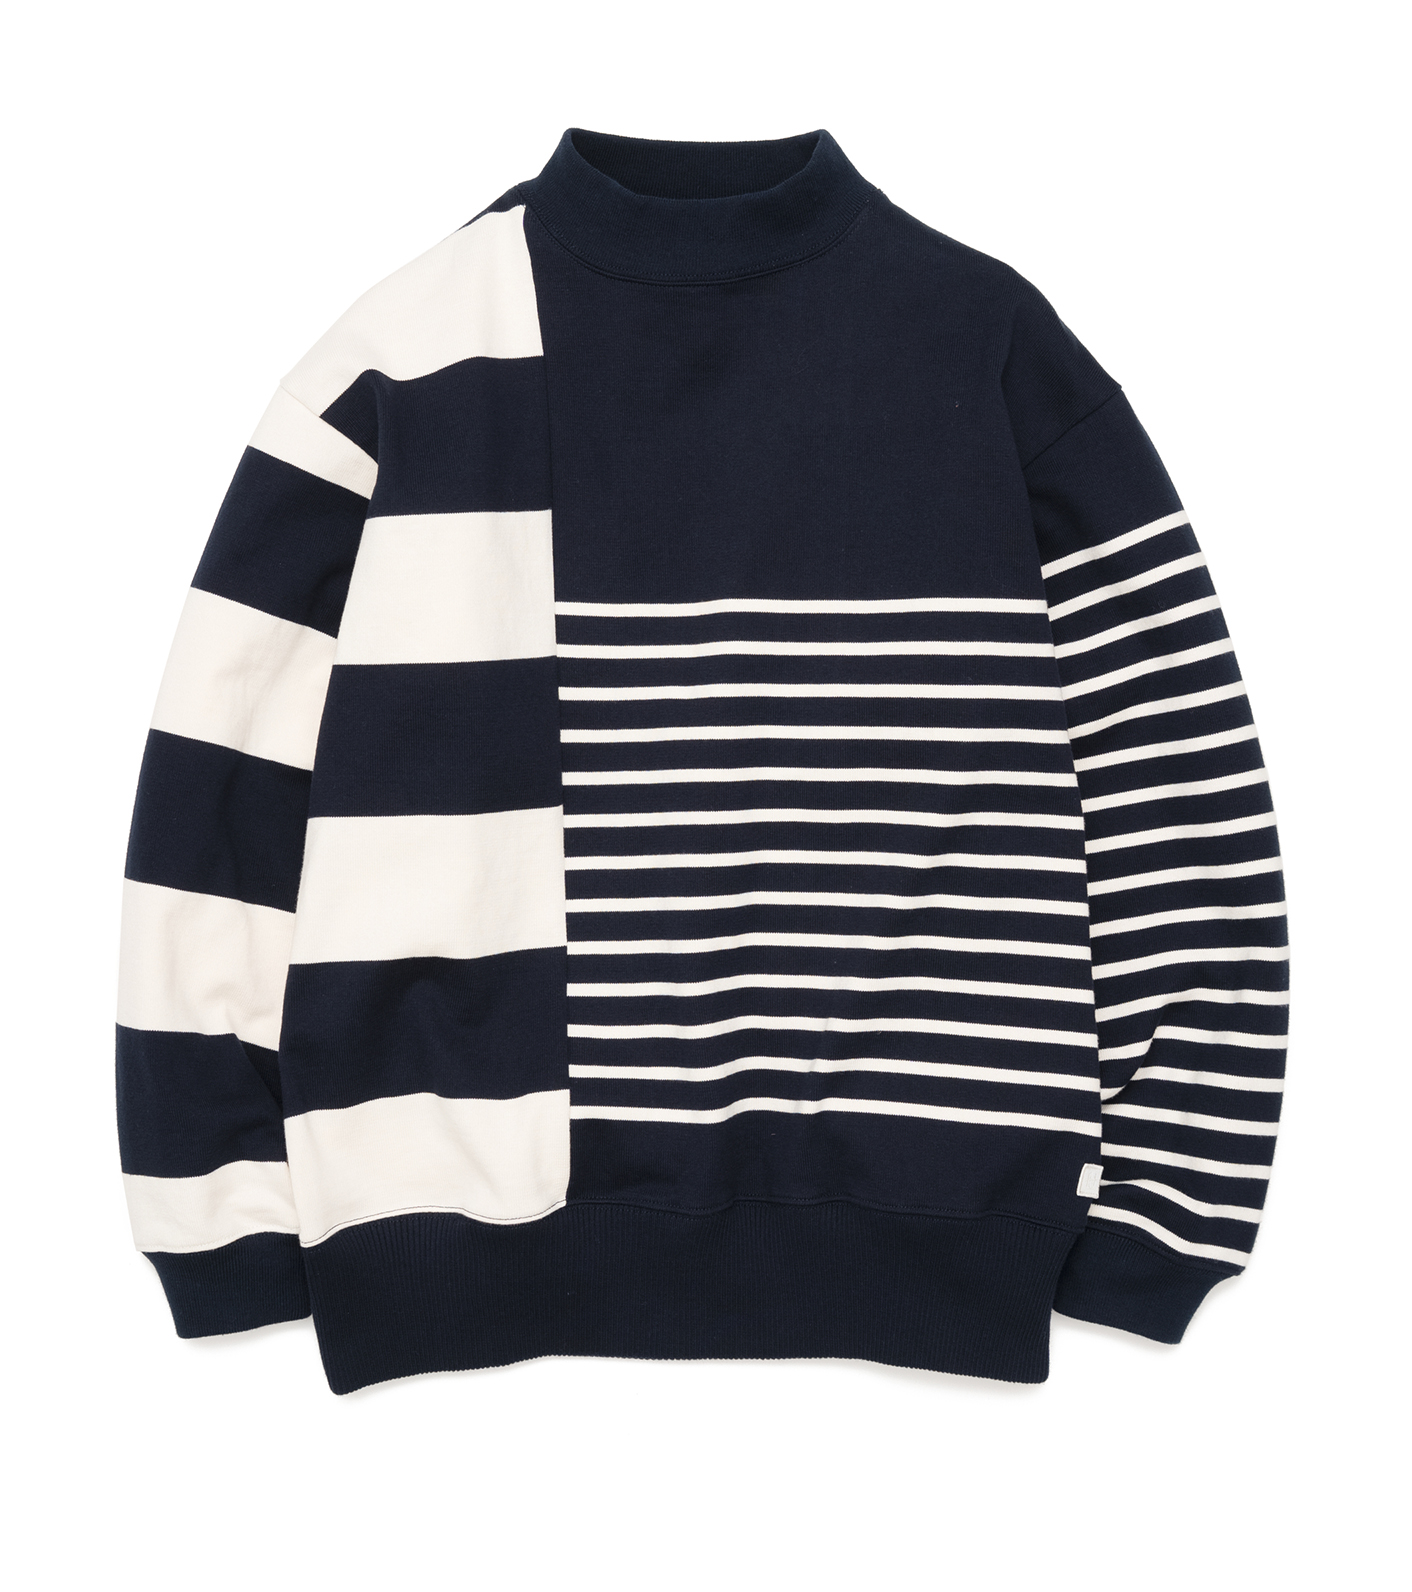 nanamican L/S  Sweater